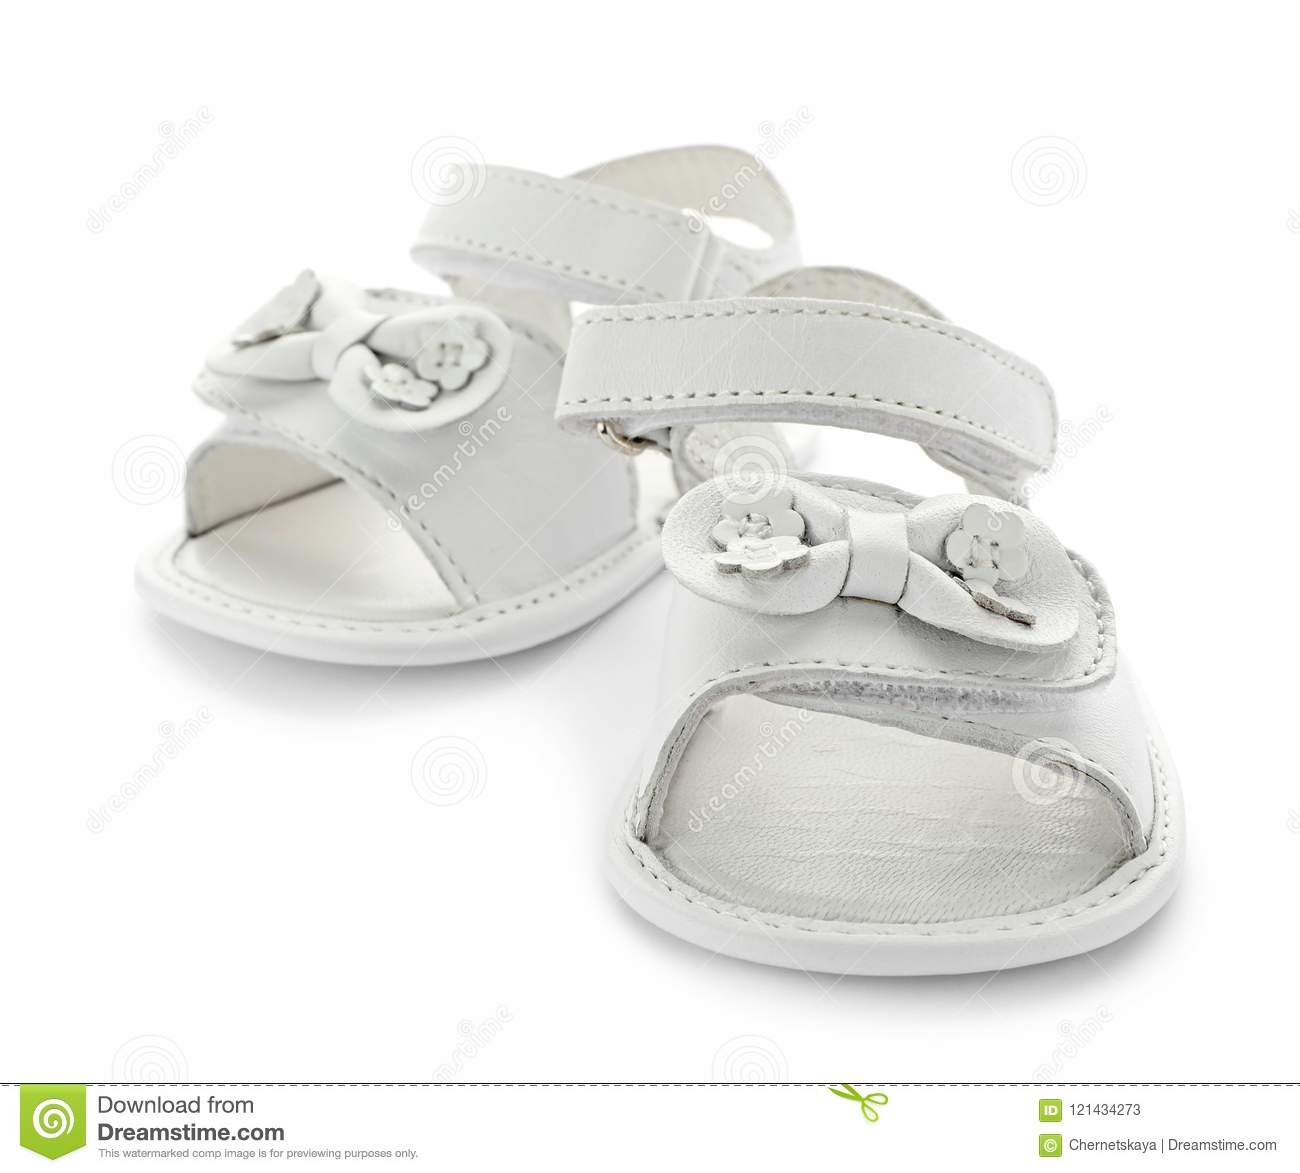 6dd5871c6355ef Pair of cute baby sandals stock image. Image of strap - 121434273